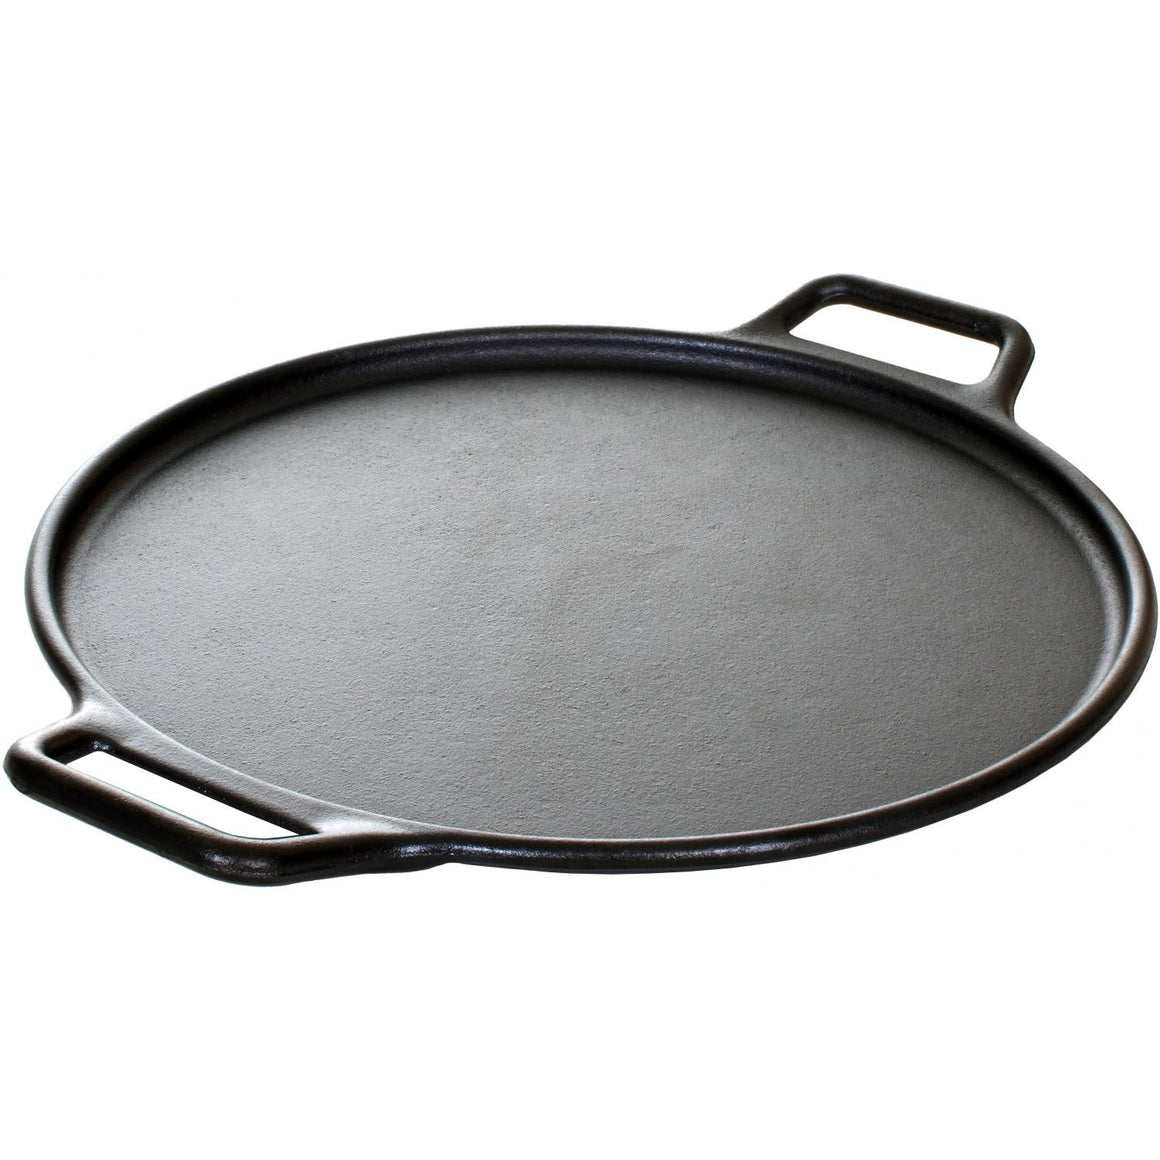 Lodge Pro-Logic P14P3 Cast Iron Pizza Pan, Black, 14-inch - Kerlin's Western and Work Wear